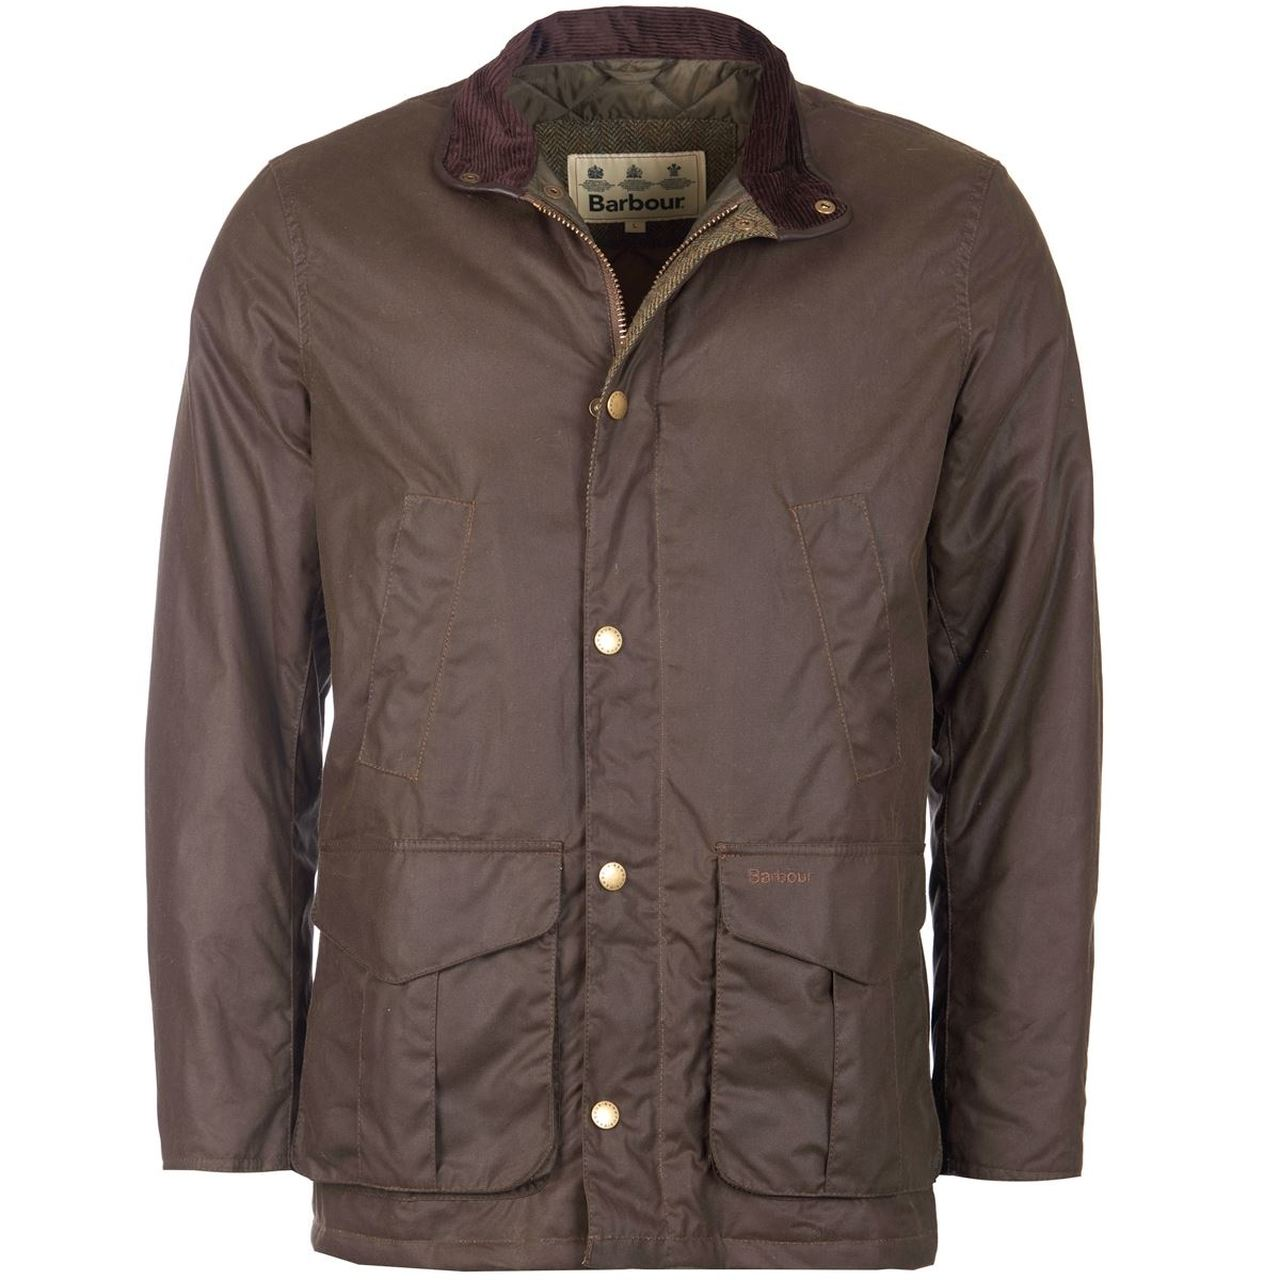 Barbour Hereford Wax Jacket for Men in Peat